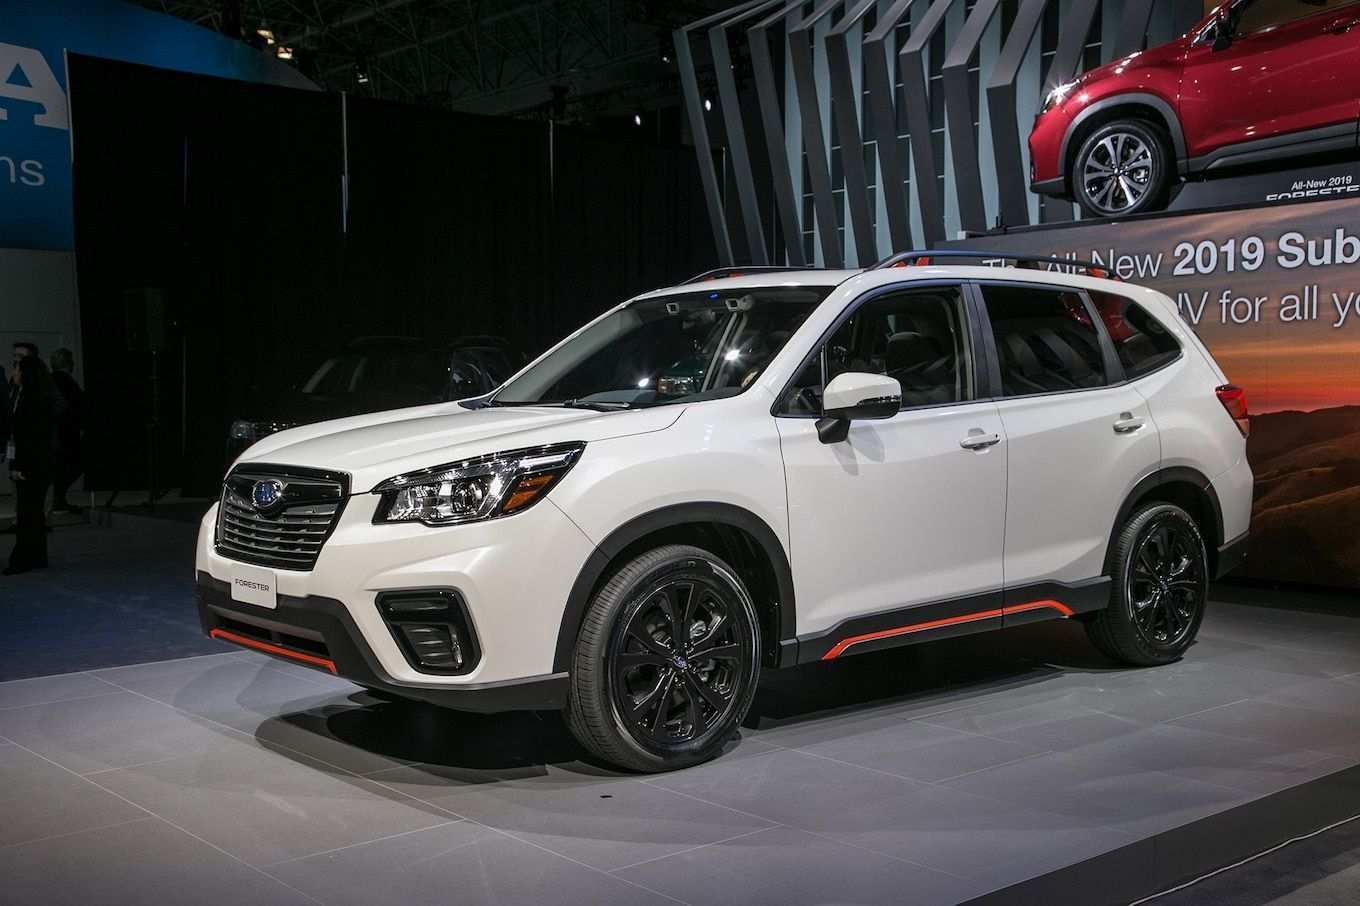 42 New Subaru Forester 2019 Ground Clearance Release